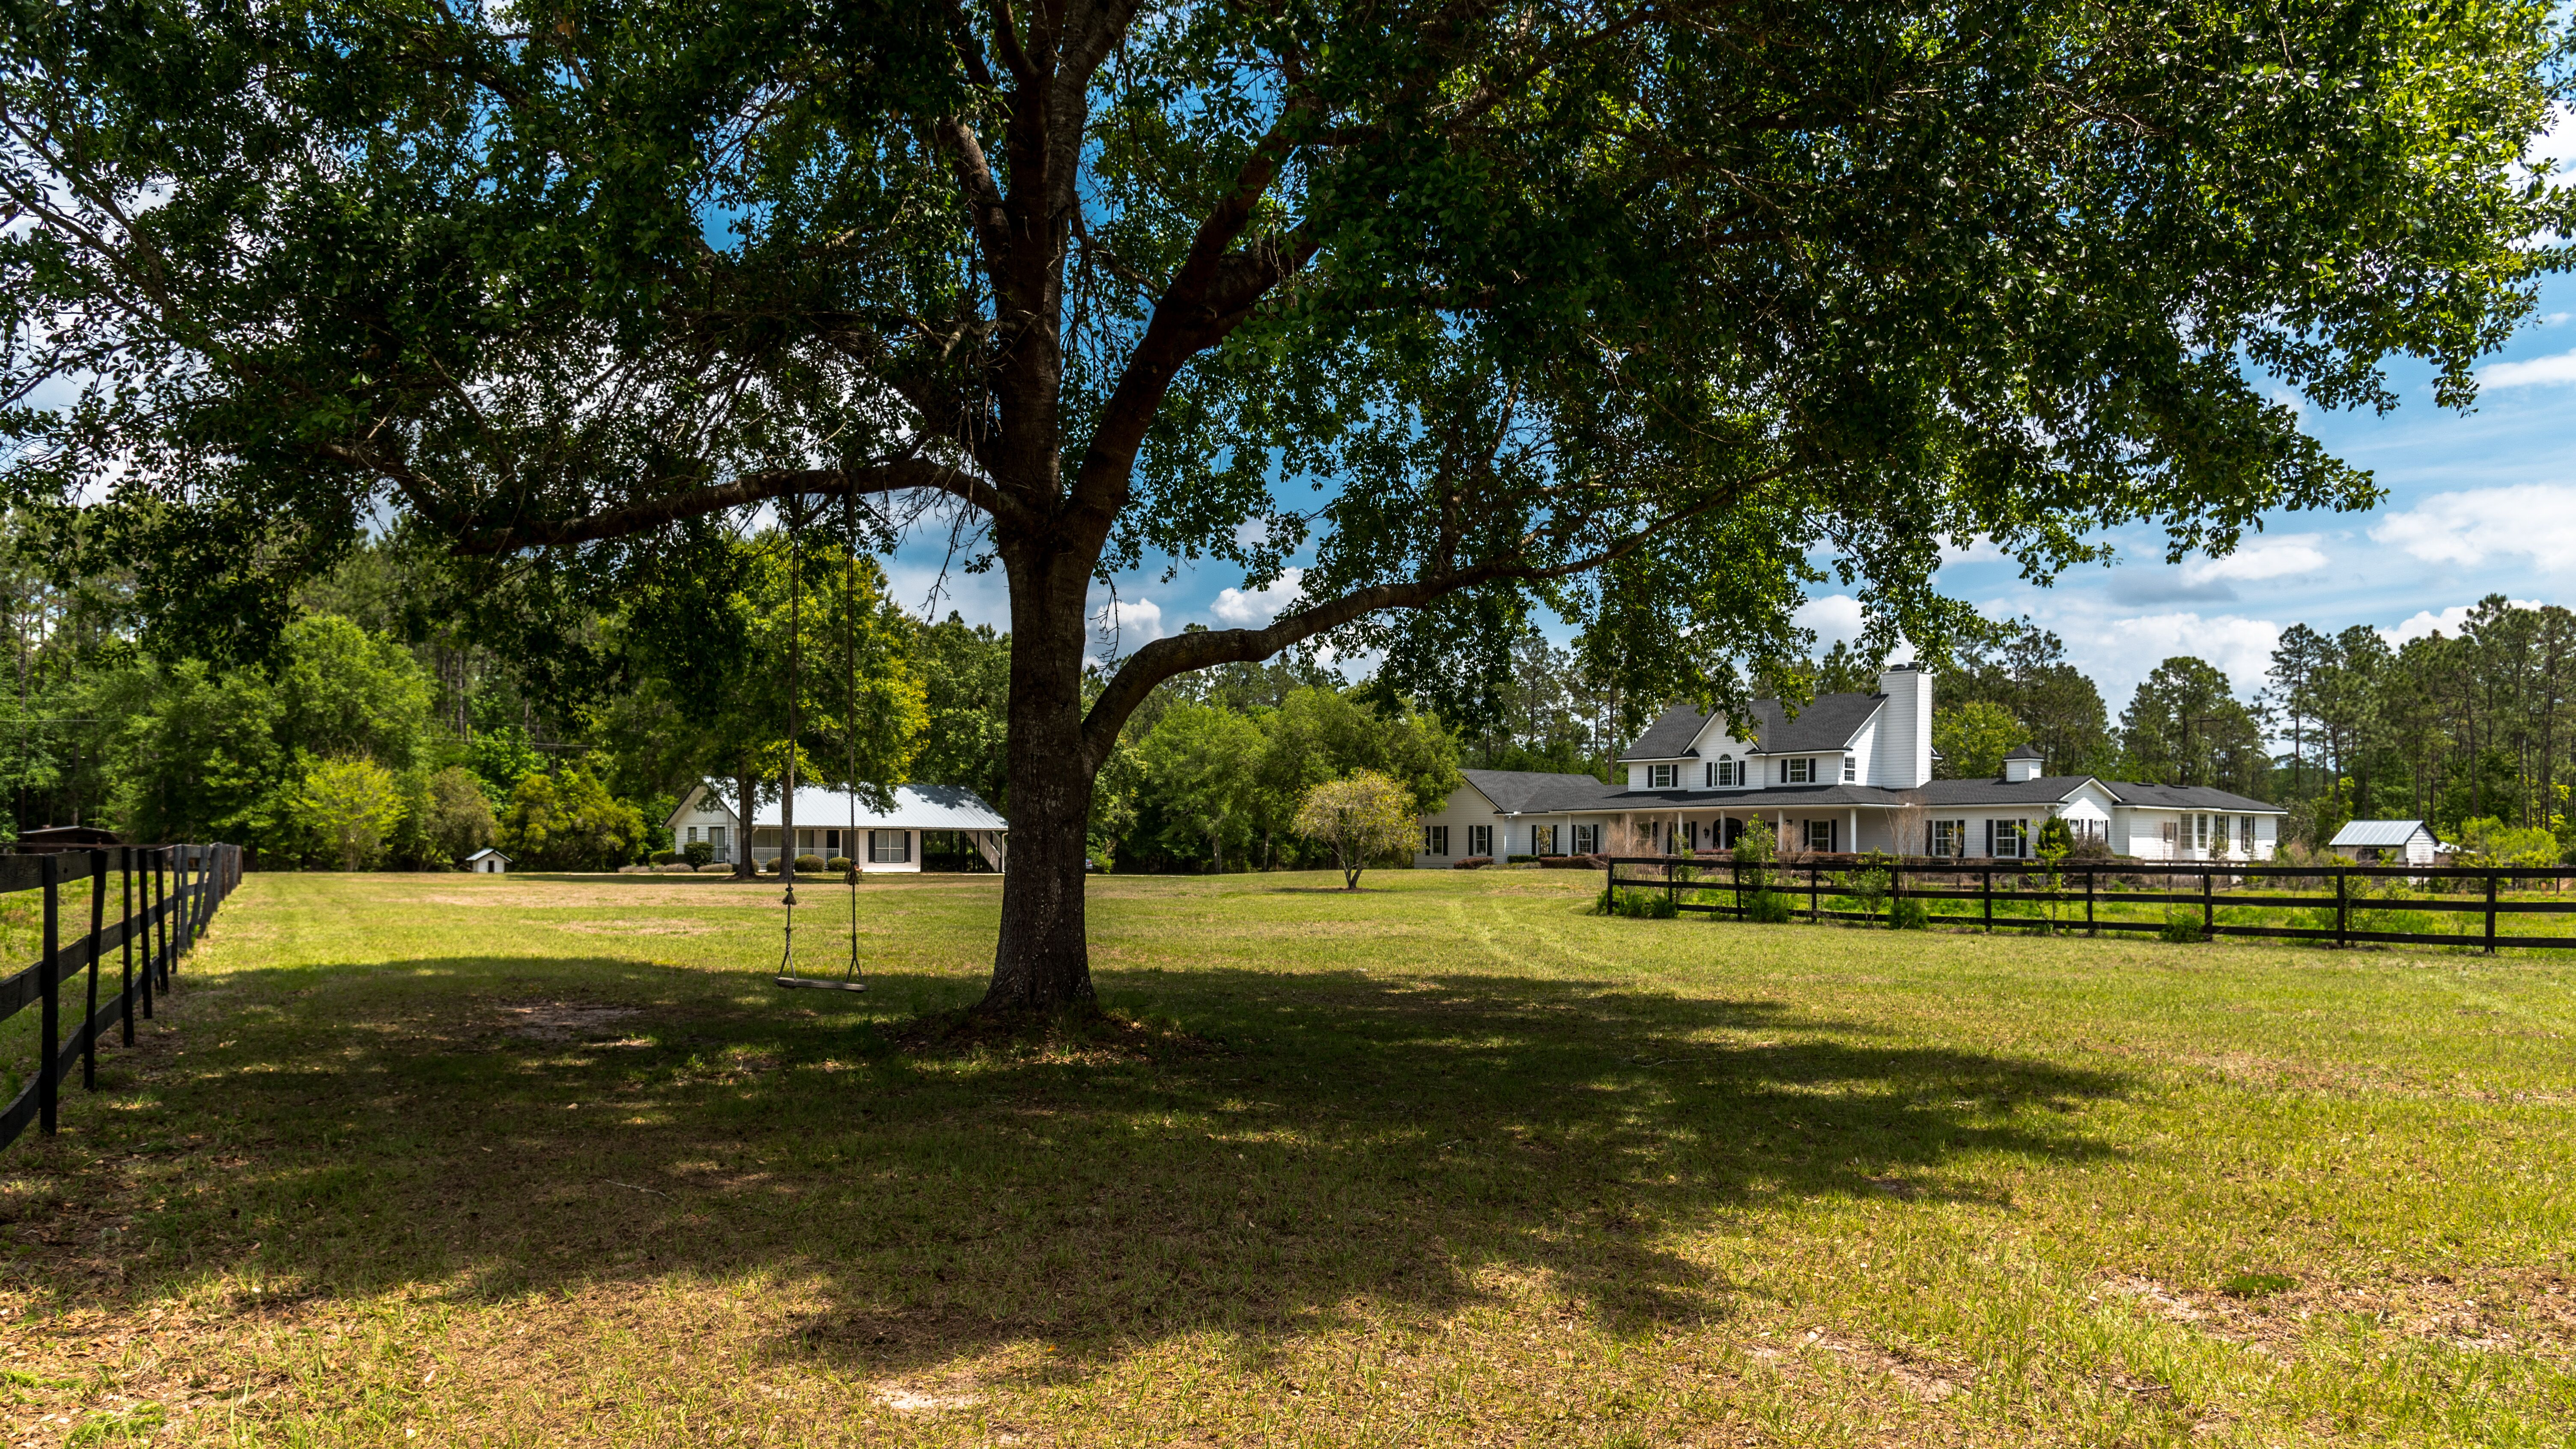 Wedding reception venues in jacksonville fl the knot the manor at 12 oaks farm junglespirit Gallery